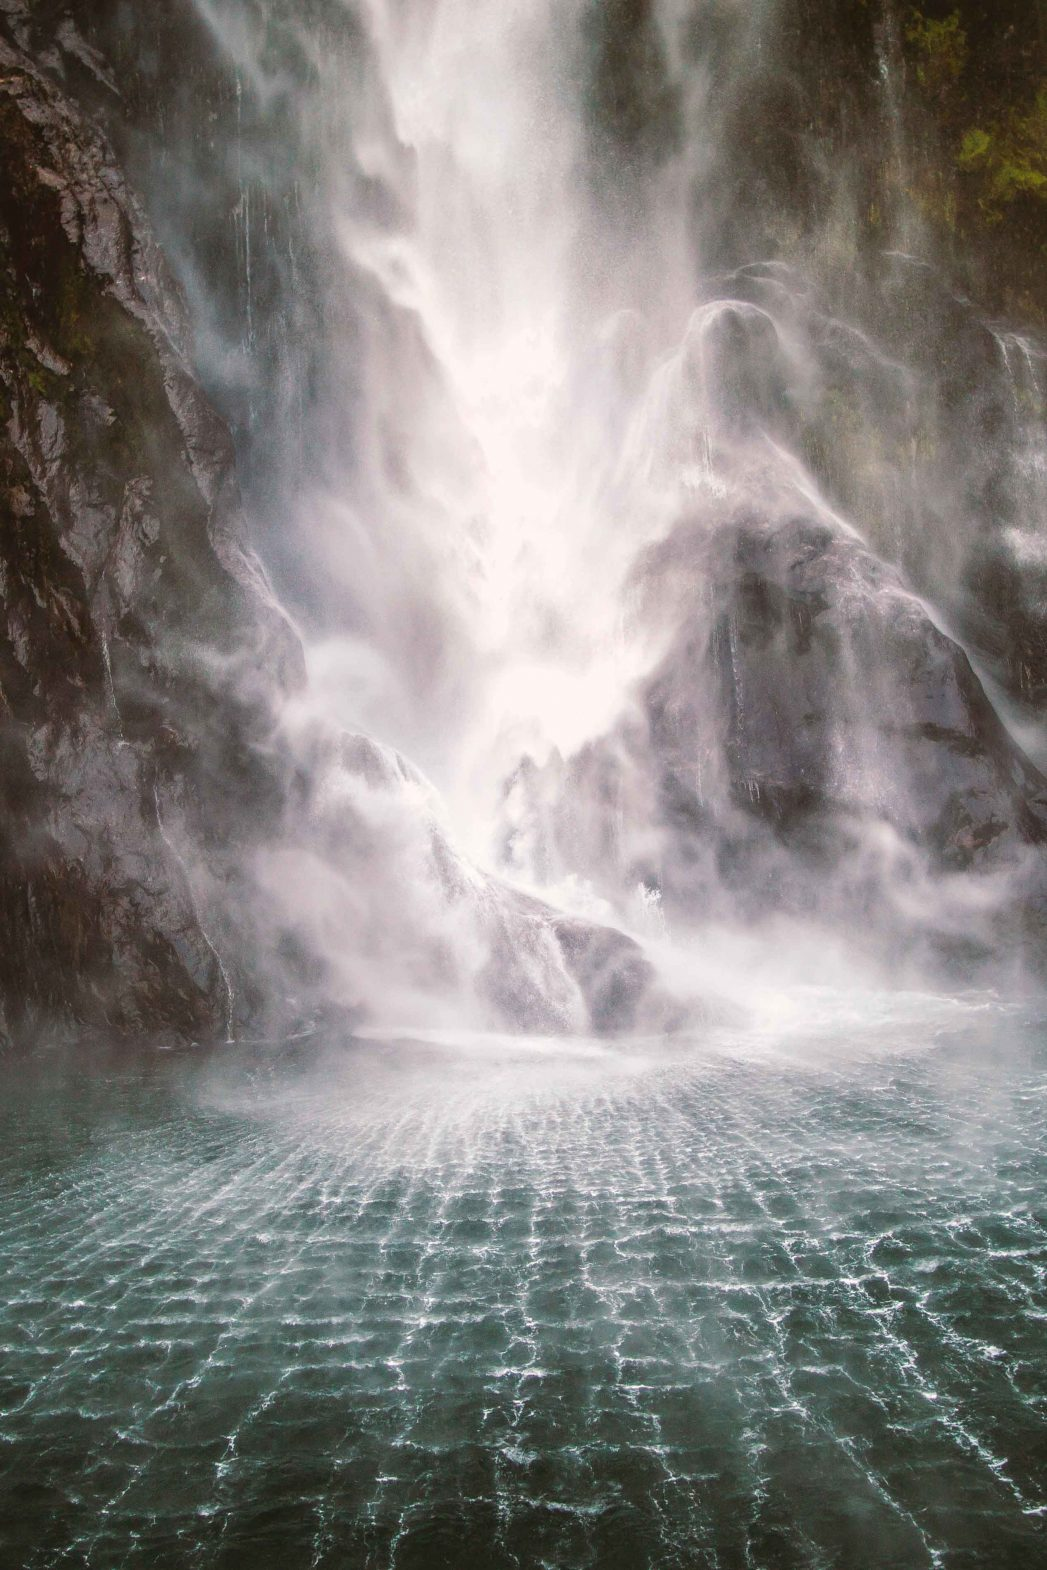 A waterfall at Milford Sound, New Zealand.